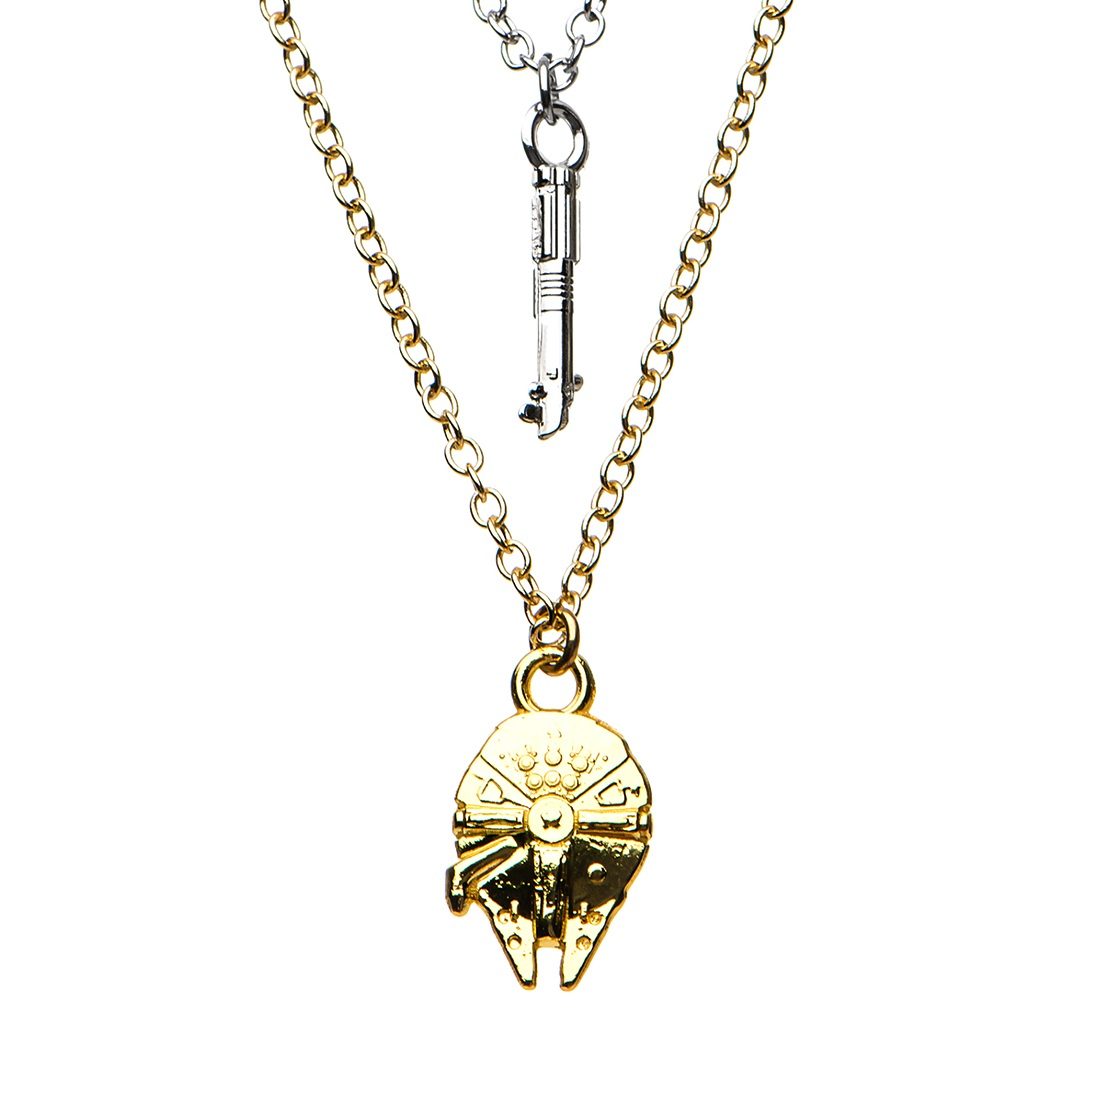 Star Wars Jewelry On Sale at Zulily